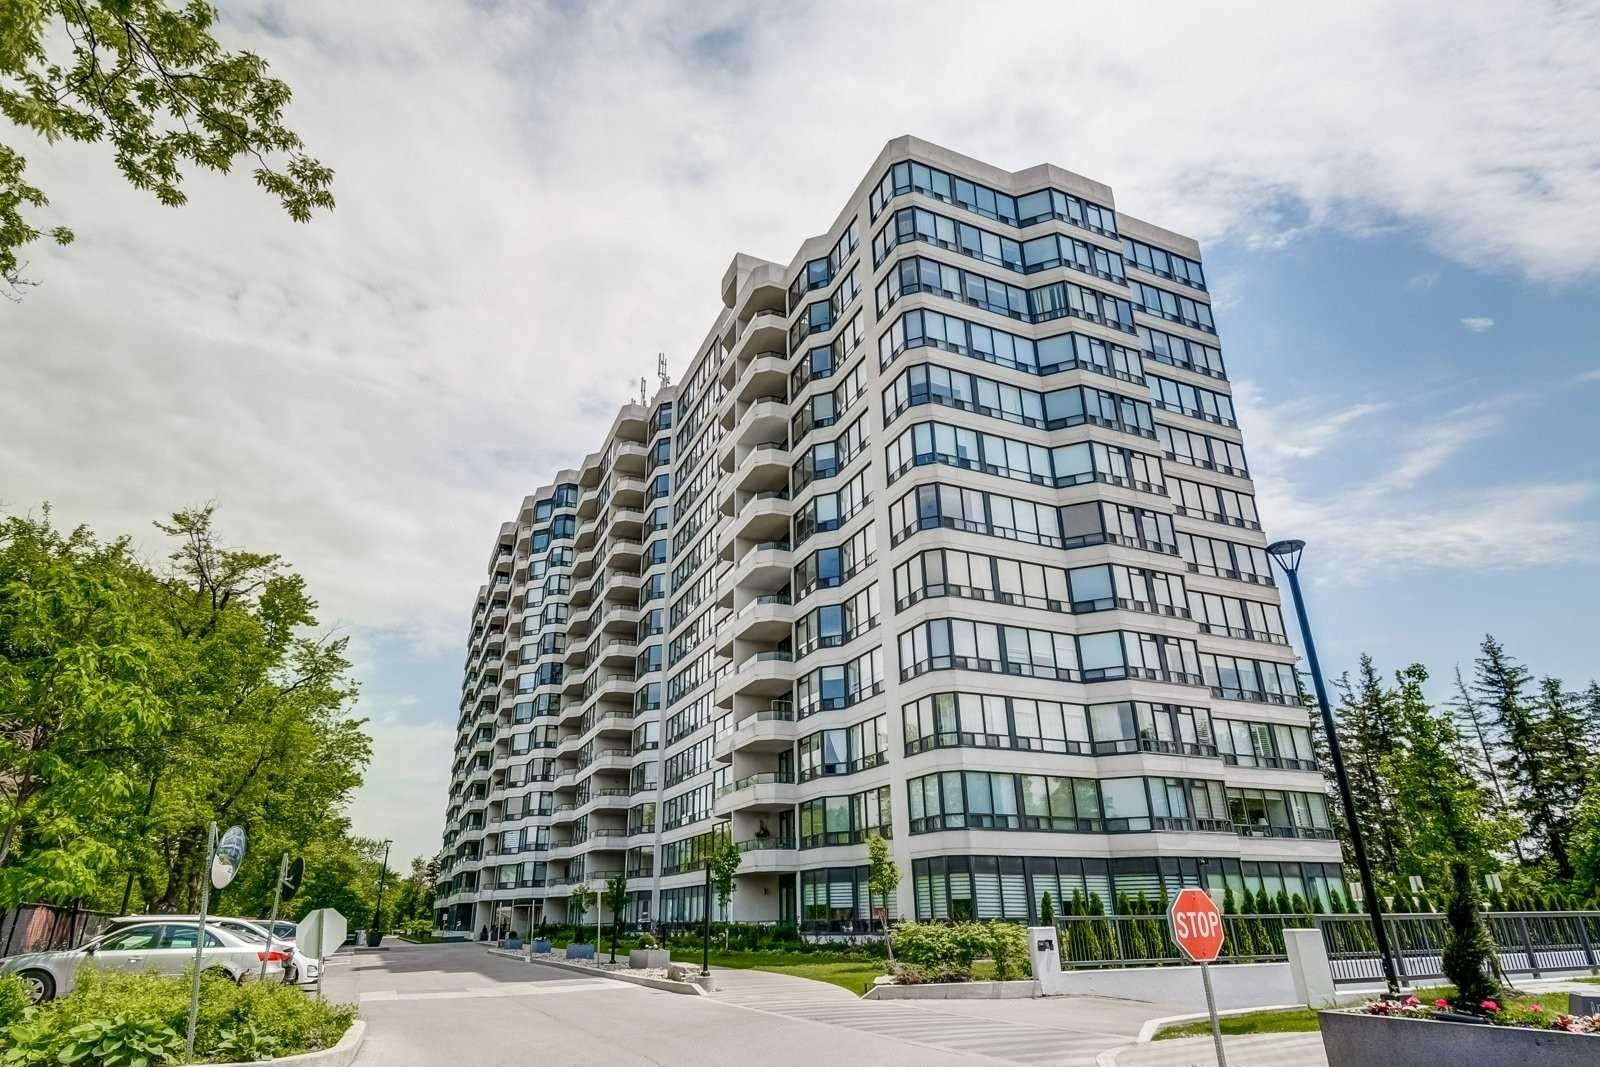 8501 Bayview Ave, unit 1208 for sale in Toronto - image #1